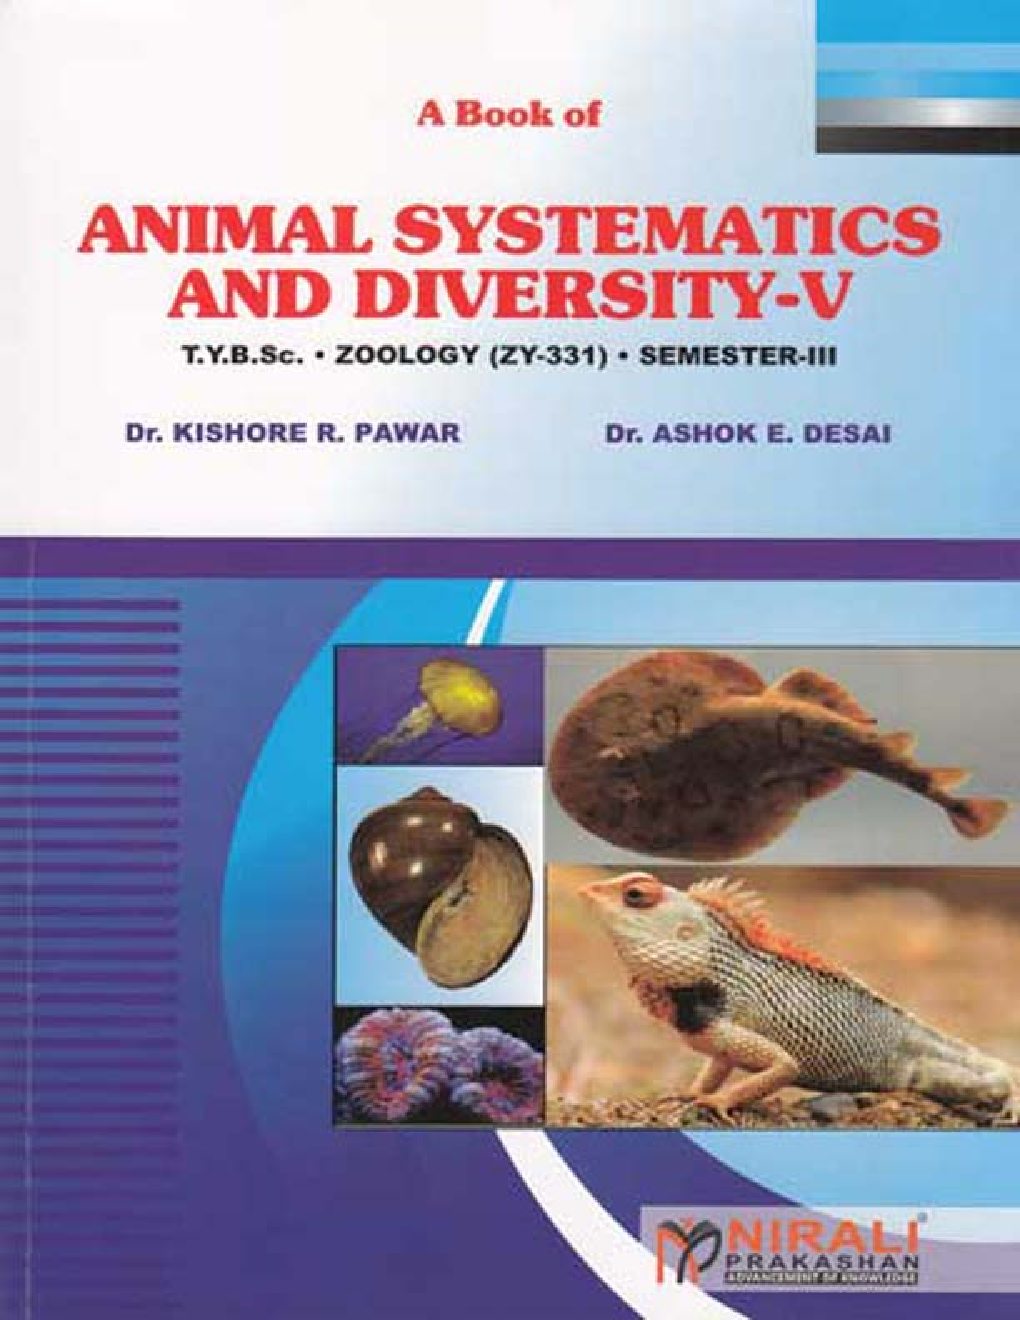 Animal Systematics And Diversity - V - Page 1